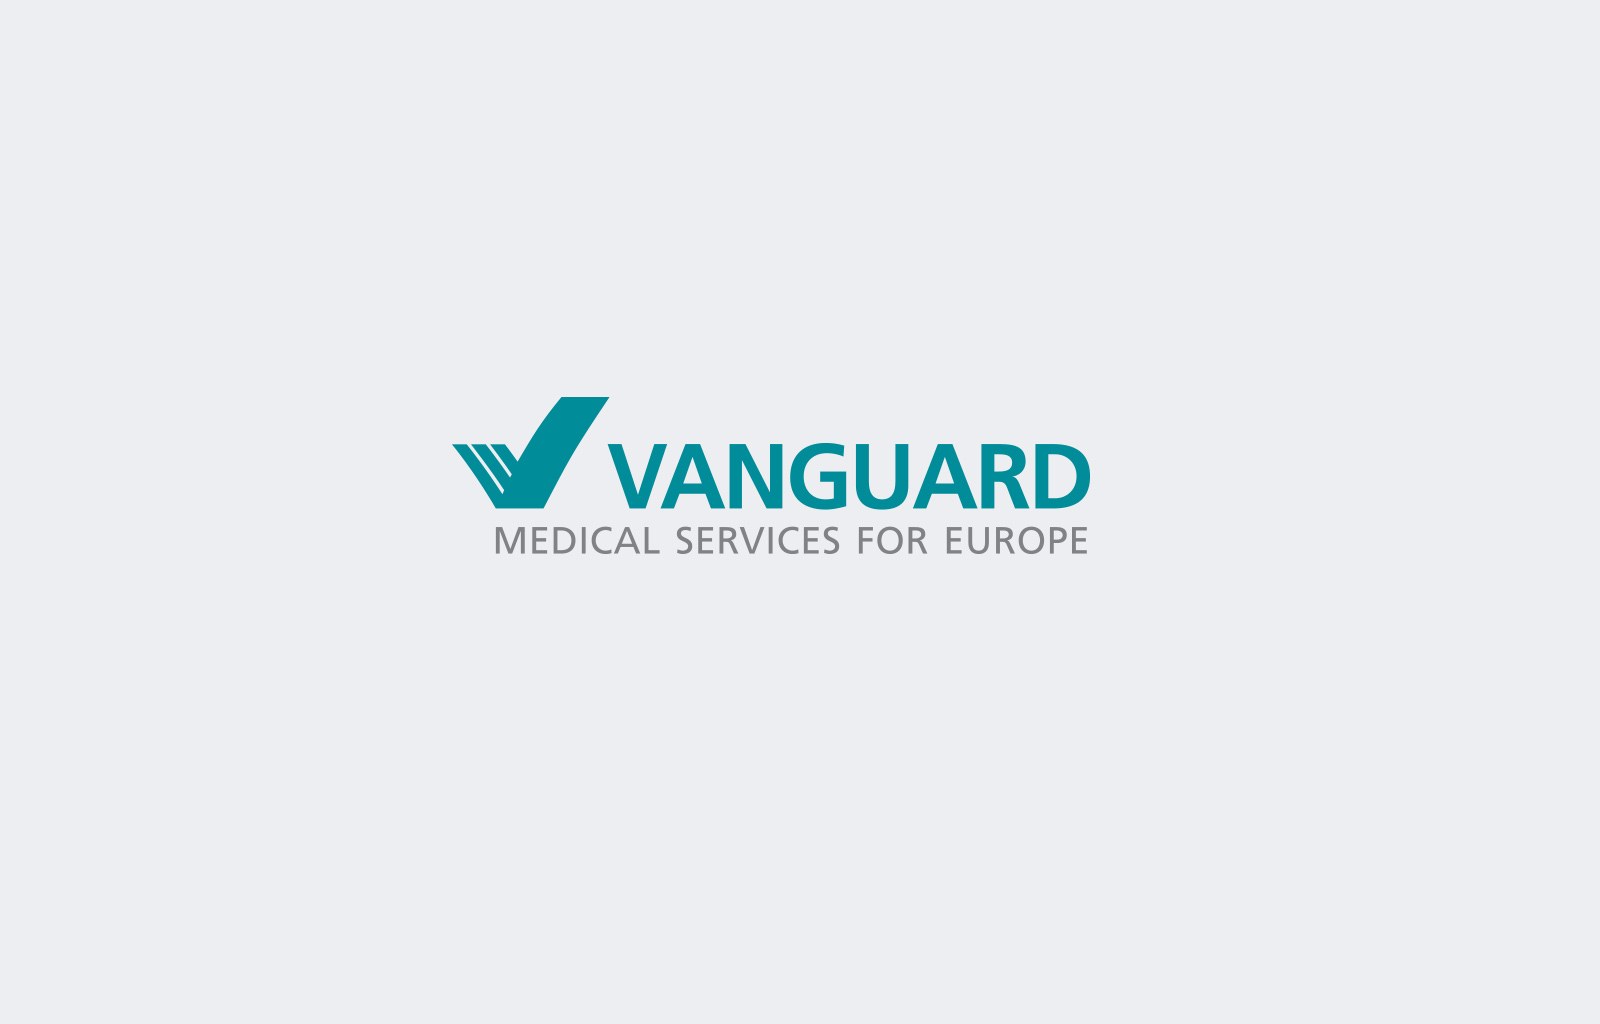 vanguard group Find company research, competitor information, contact details & financial data for the vanguard group inc get the latest business insights from d&b hoovers.